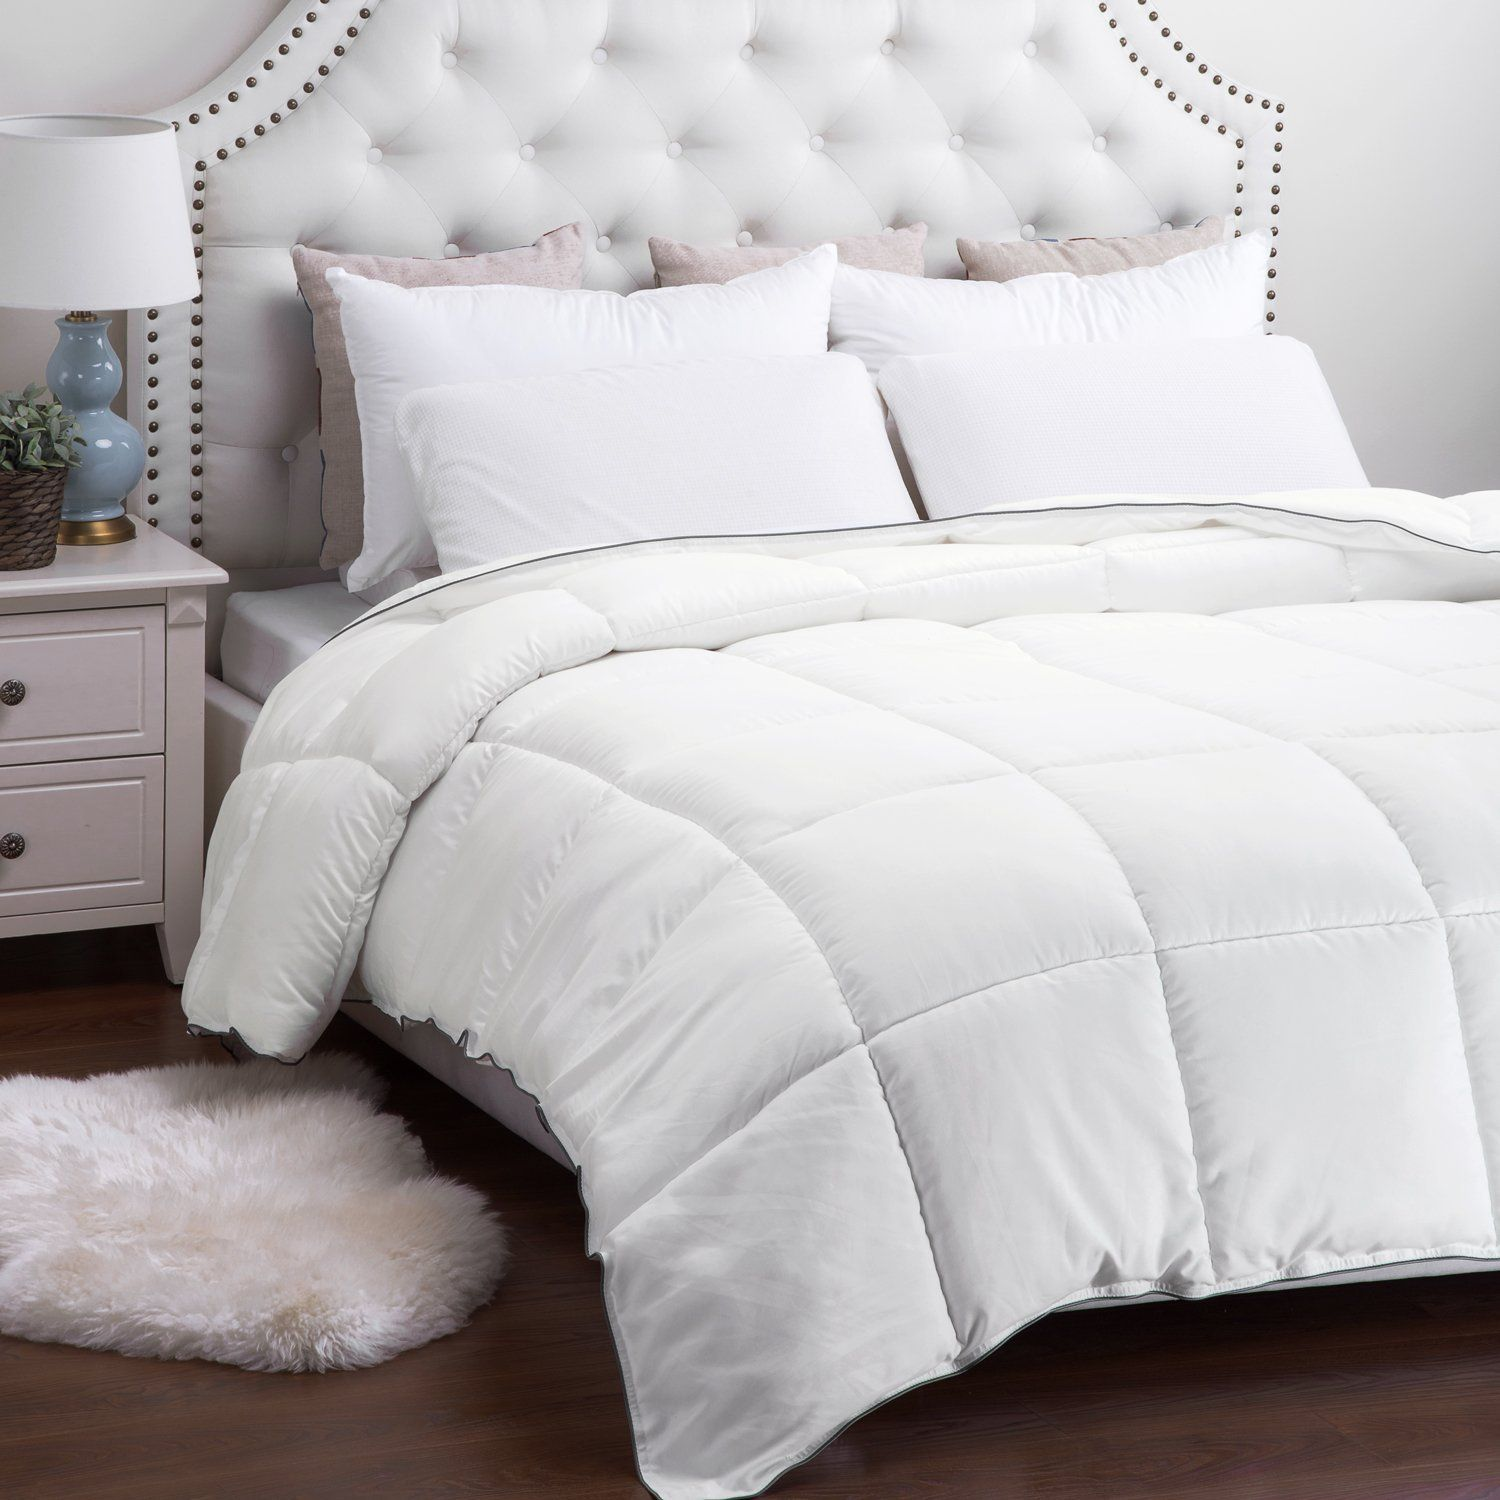 taupe duvet house wamsutta new thread bedding dillards coast macys charter covers level home s paisley tropical duvets size single macy sand zi beach blanket down hawaiian comforter charlie palm of queen comforters cover count green large full stripe club sheets damask king insert